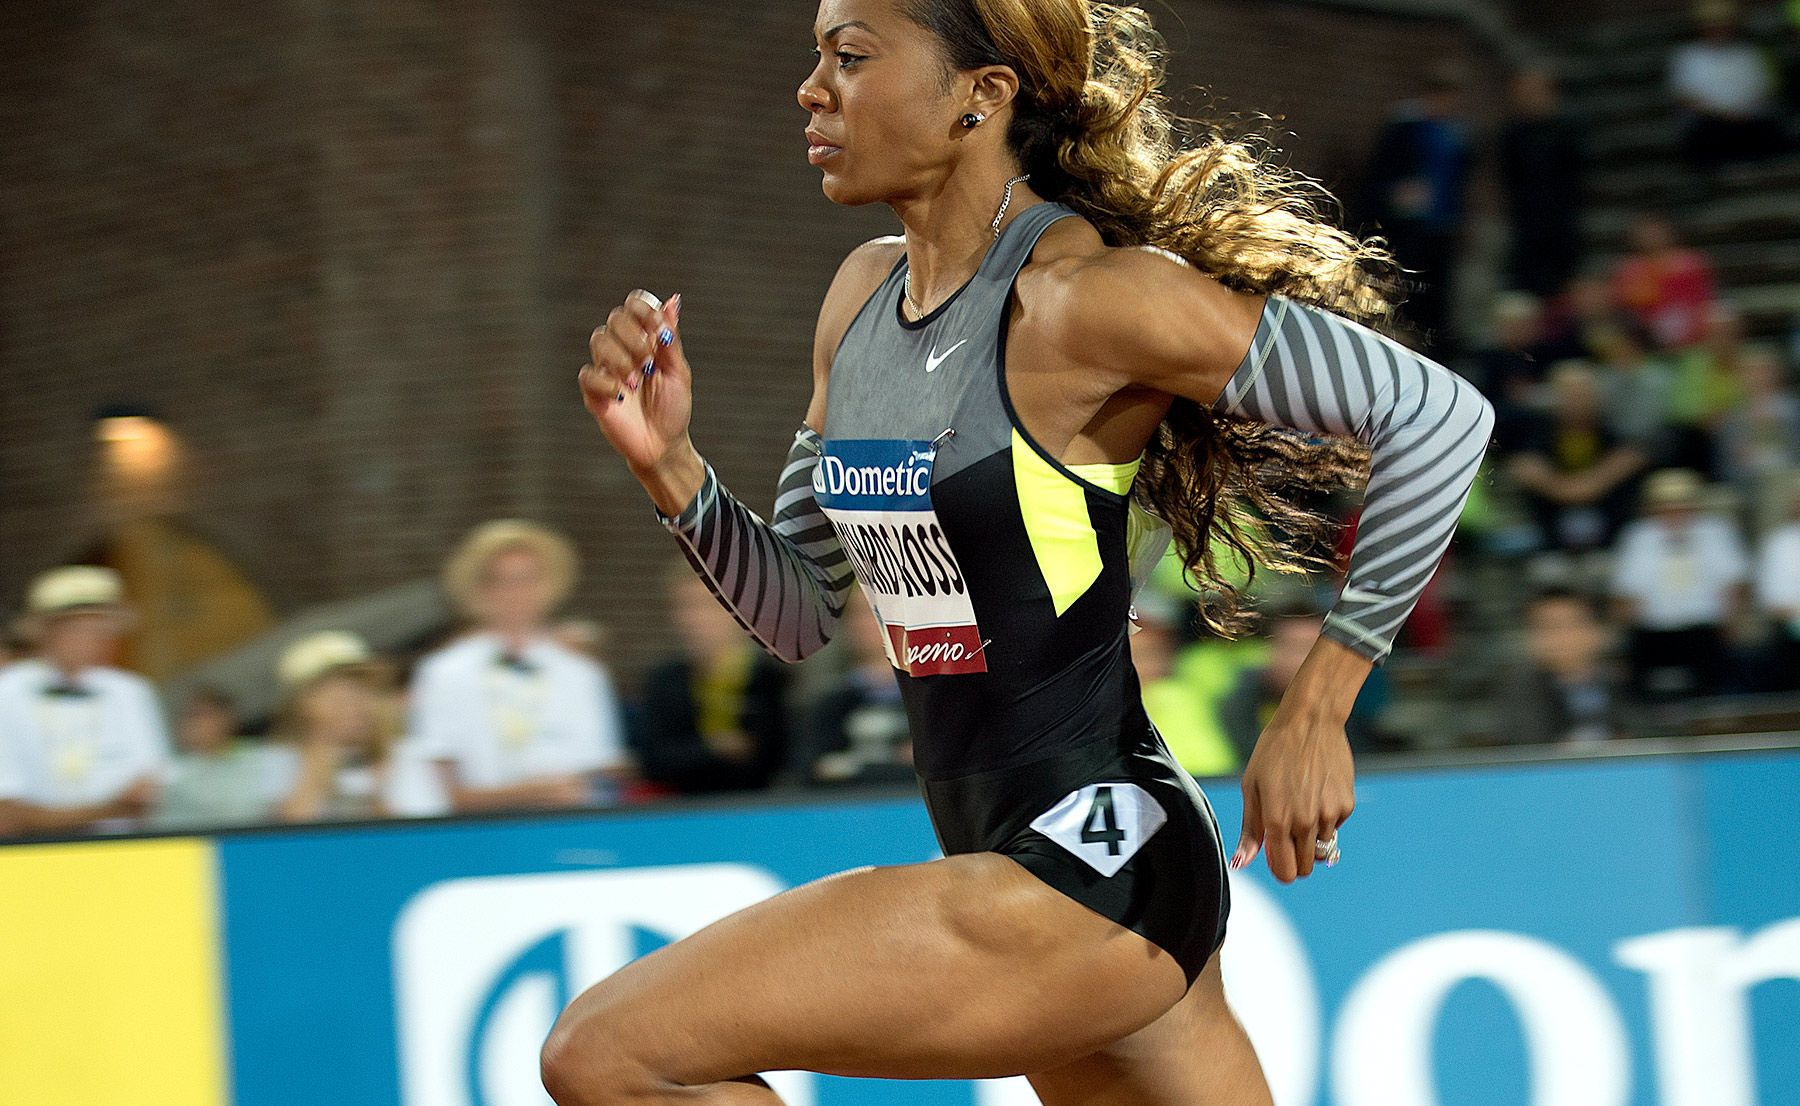 1dangalan_sanya_richards_ross_400m_track_and_field_image_jeff_cohen_photo_lb.jpg